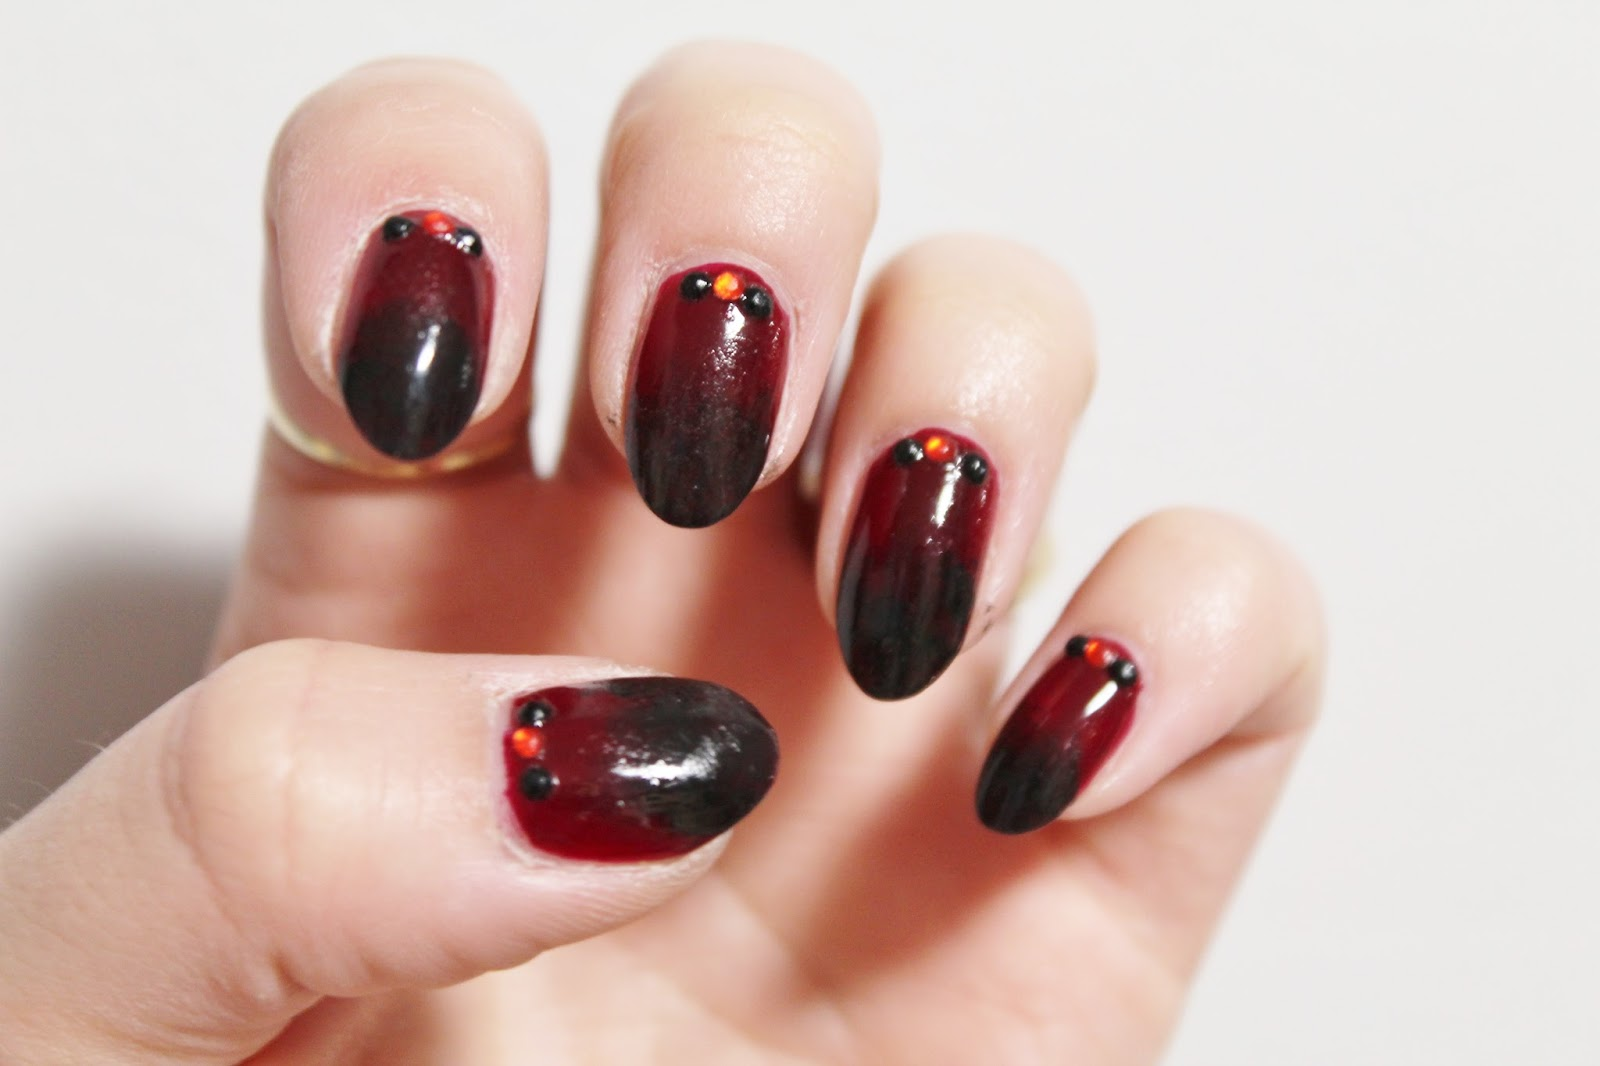 NYE Black and Red Ombre Nail Art - Jersey Girl, Texan Heart